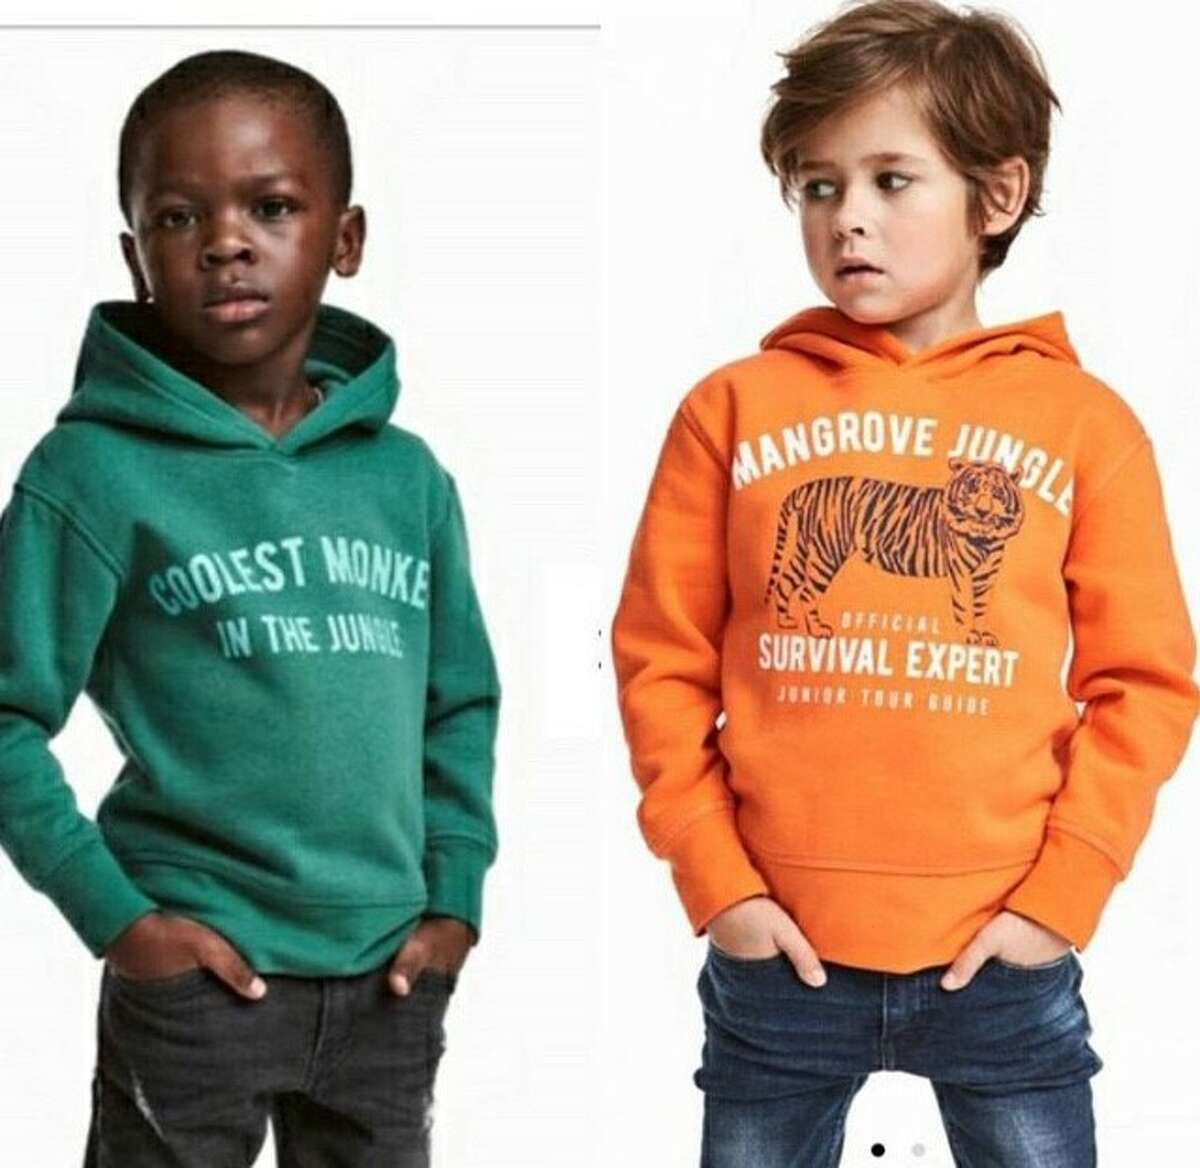 This H&M ad has been slammed as racist. >> See a collection of racist advertisements and trade cards from the 1800s...